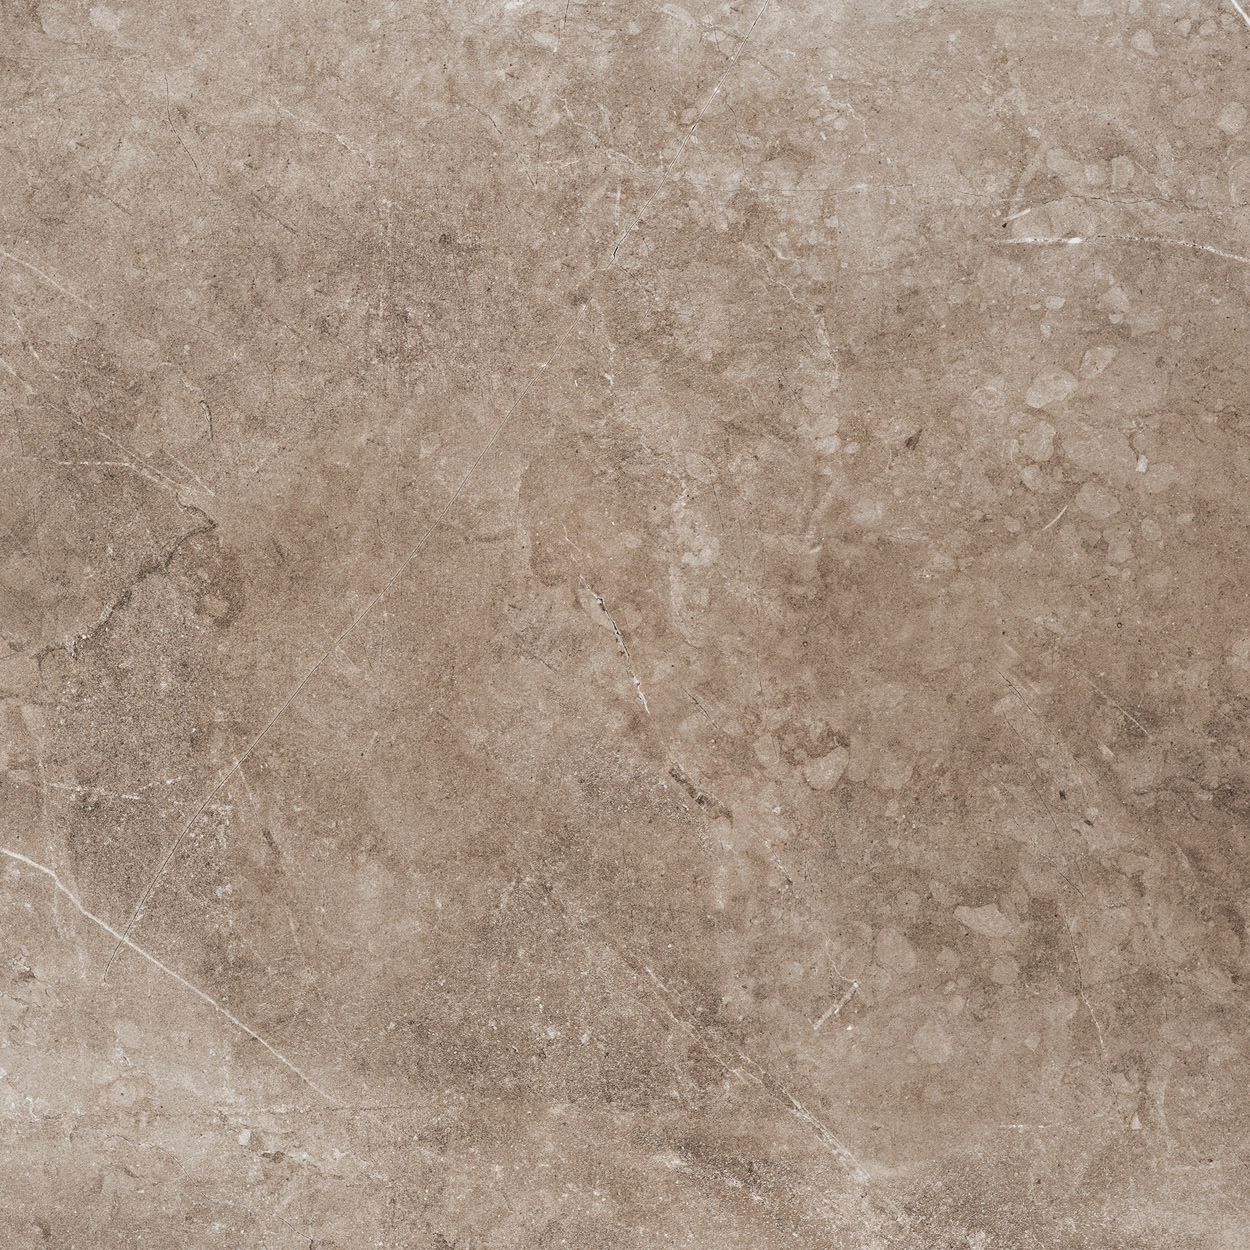 32 X 32 Evo Stone Dune Honed finished Rectified Porcelain Tile (SPECIAL ORDER ONLY)